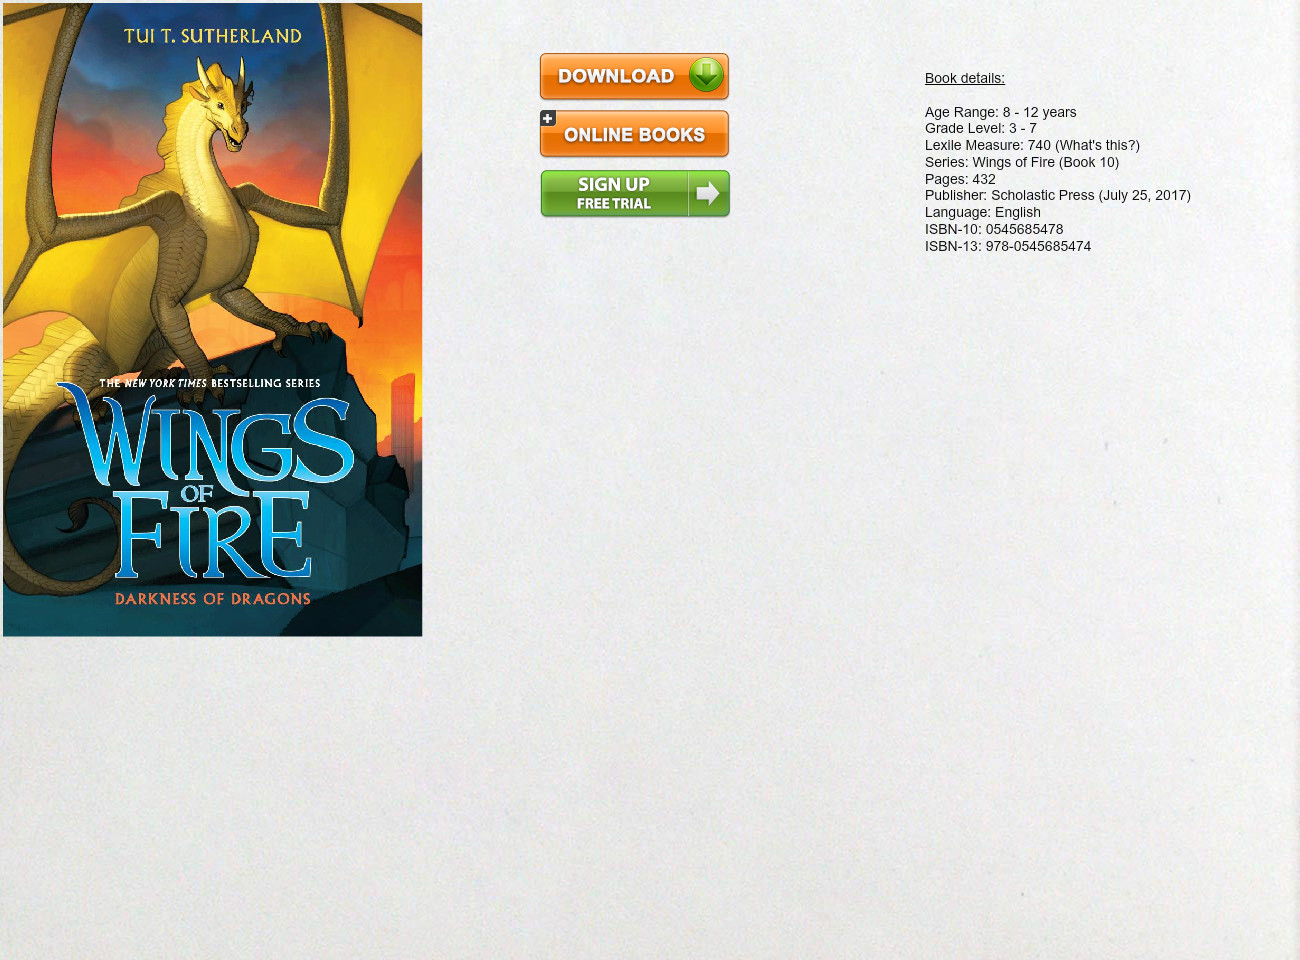 Of fire epub download wings